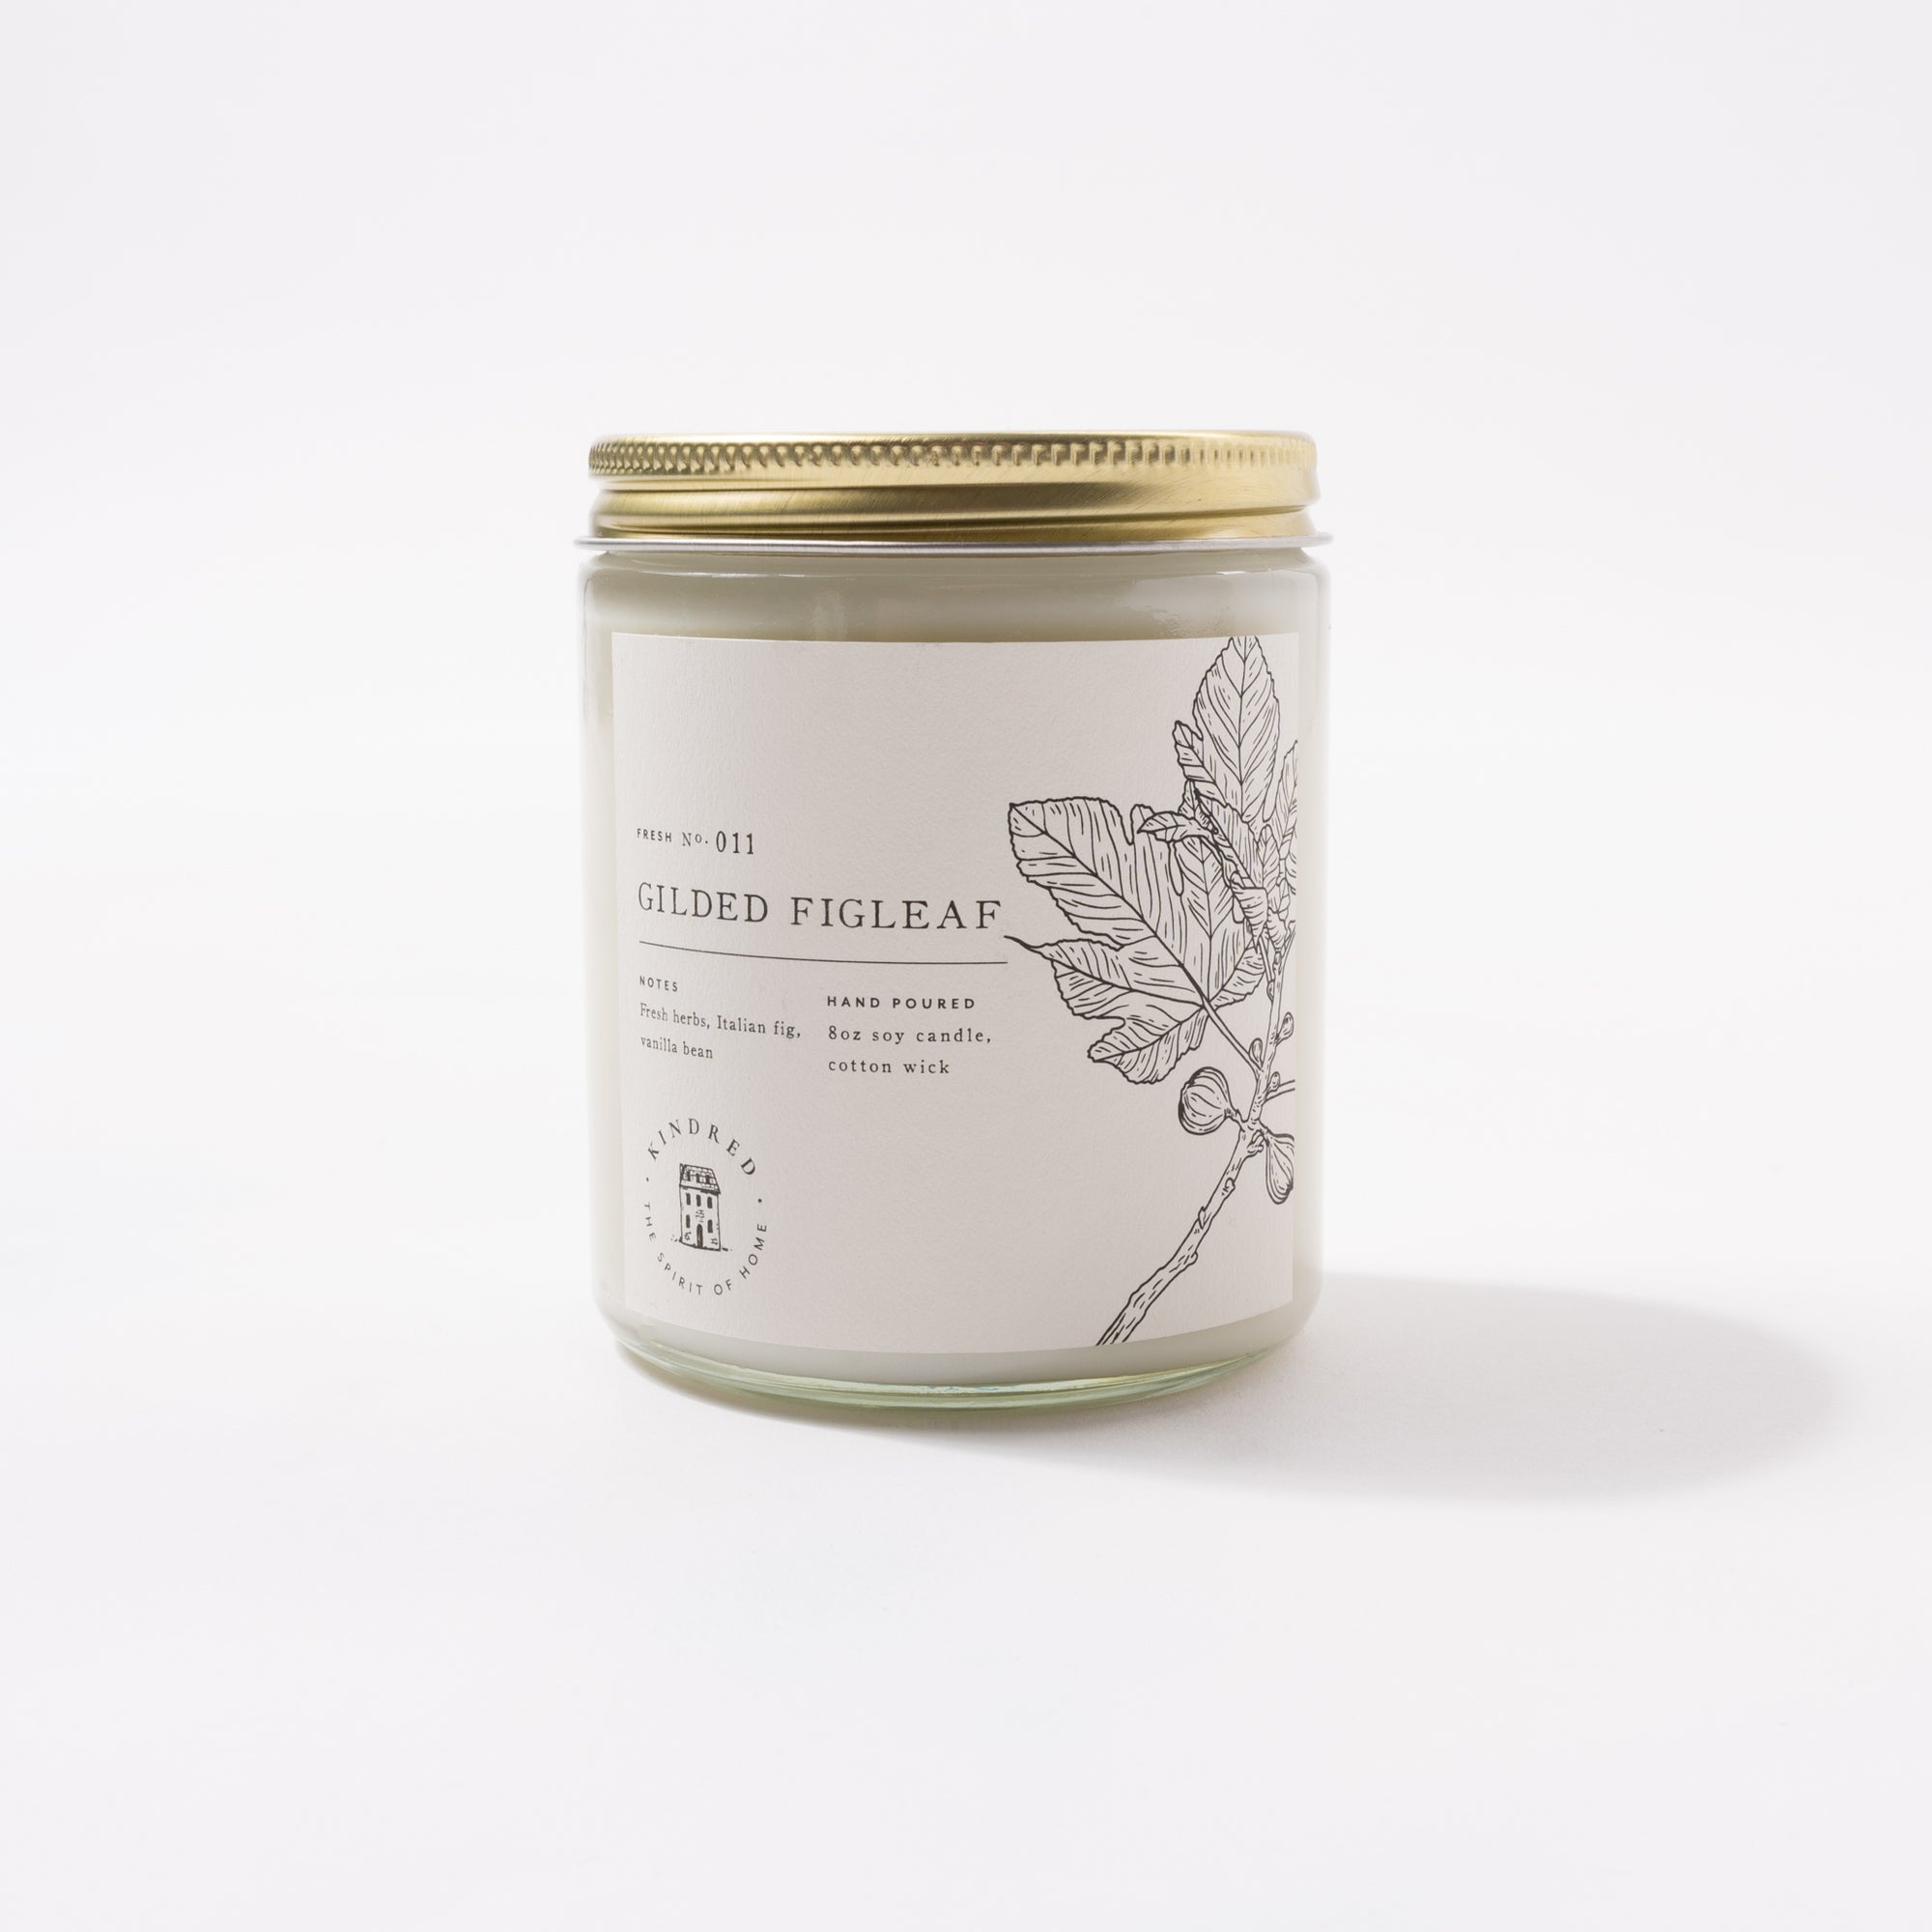 Gilded Figleaf Classic Candle